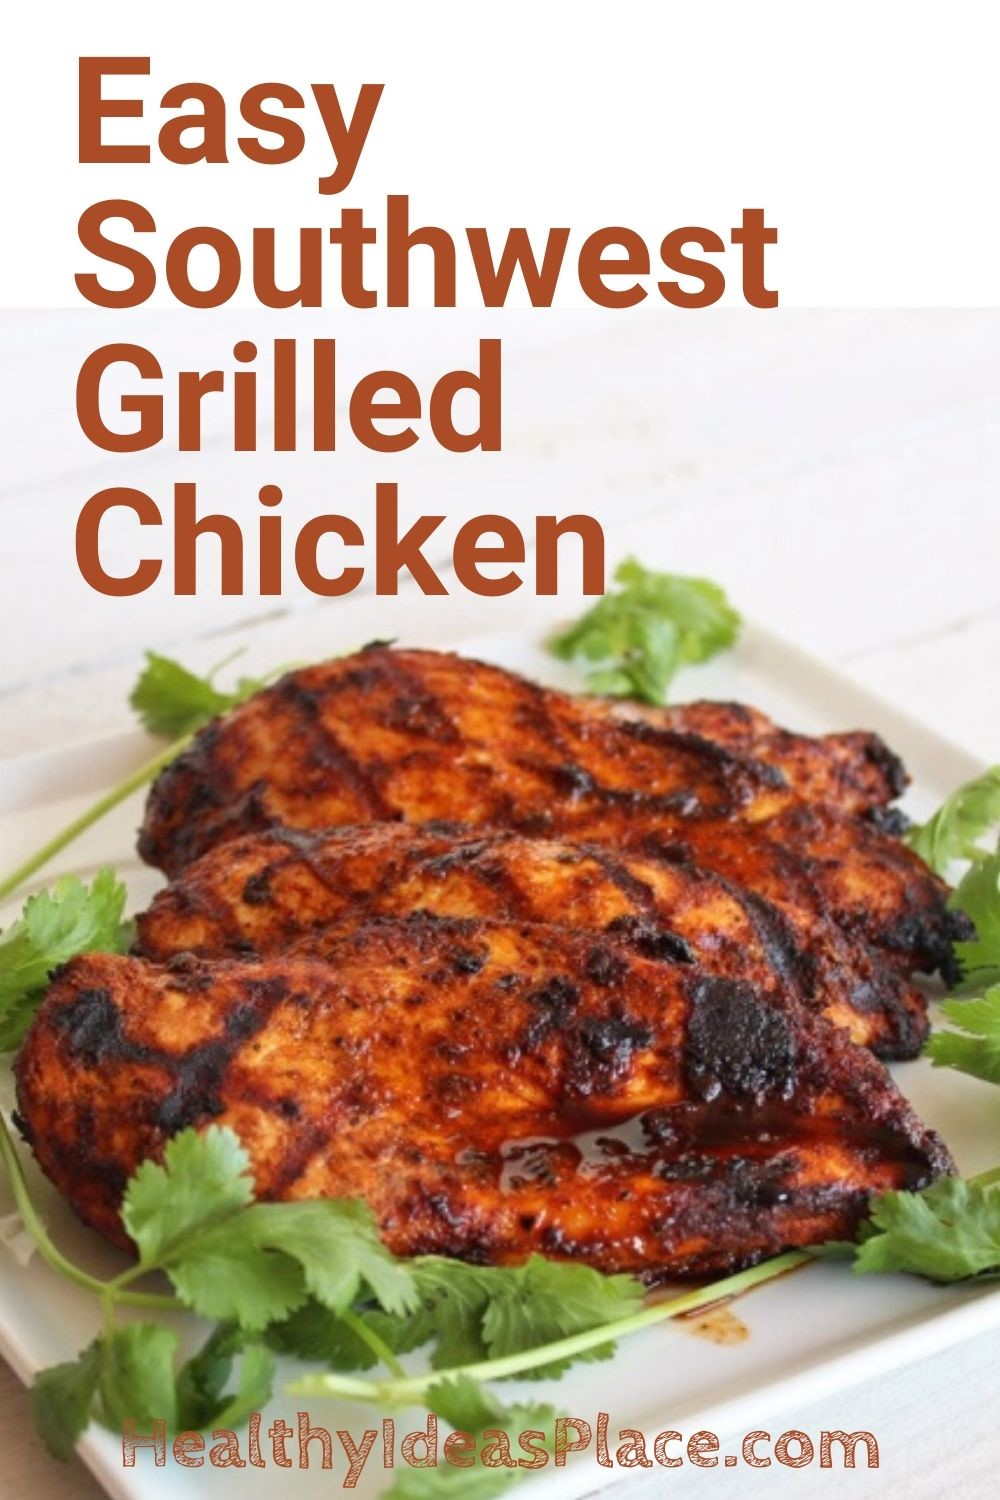 Grilled chicken and fresh cilantro on white plate